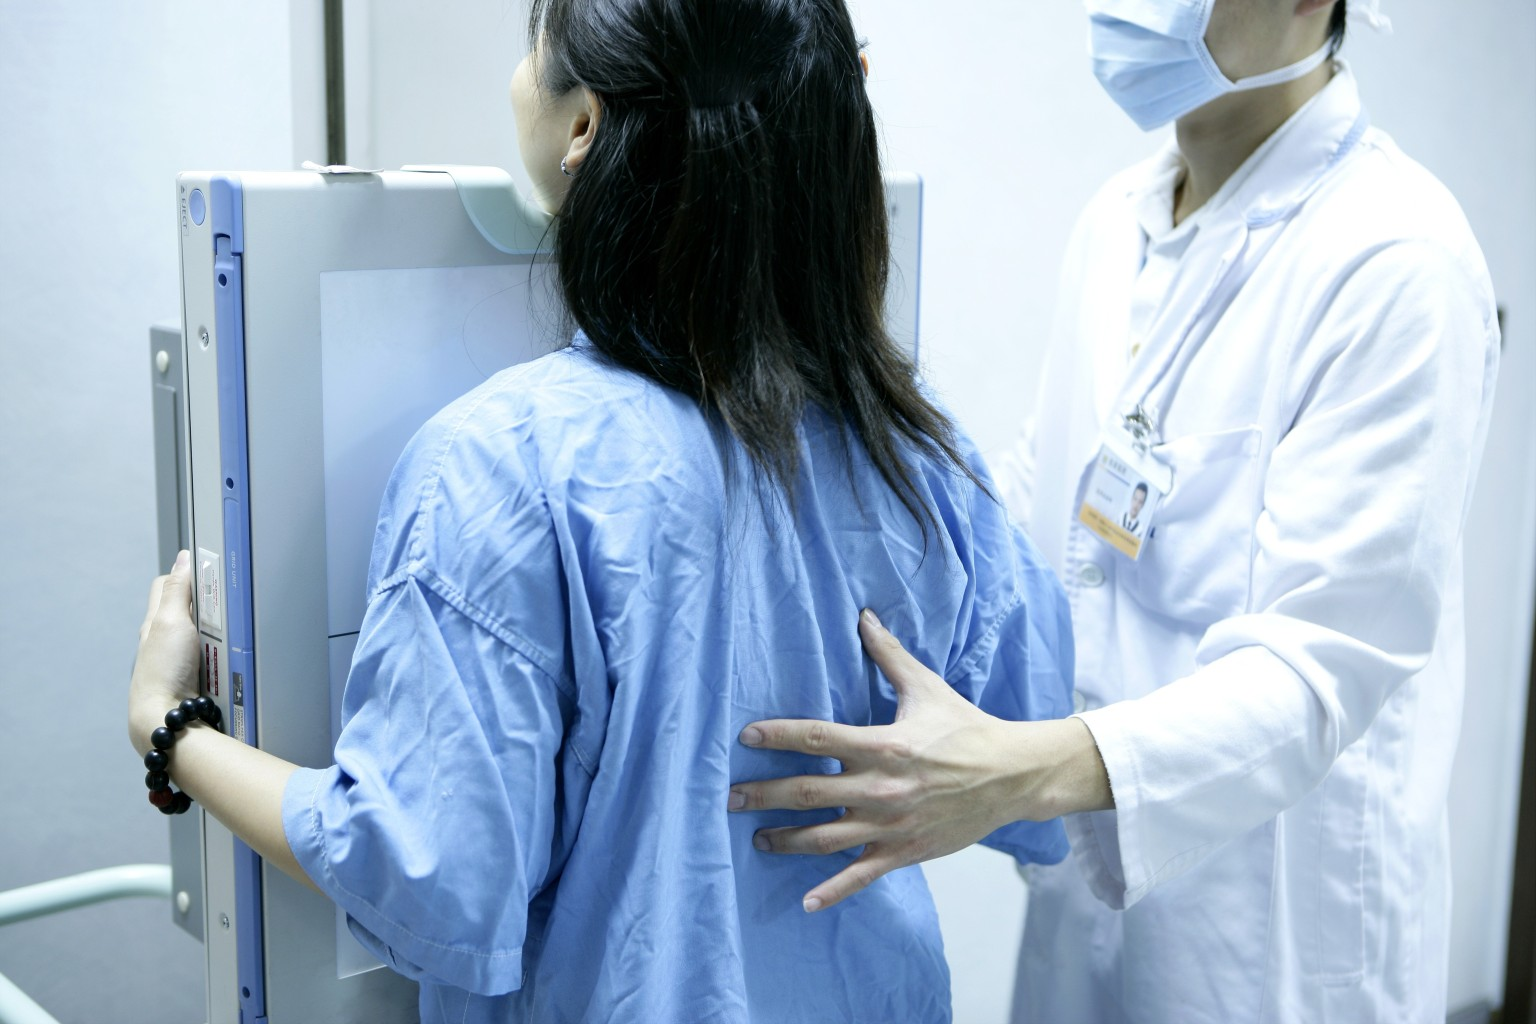 Technician assisting female patient with chest x-ray